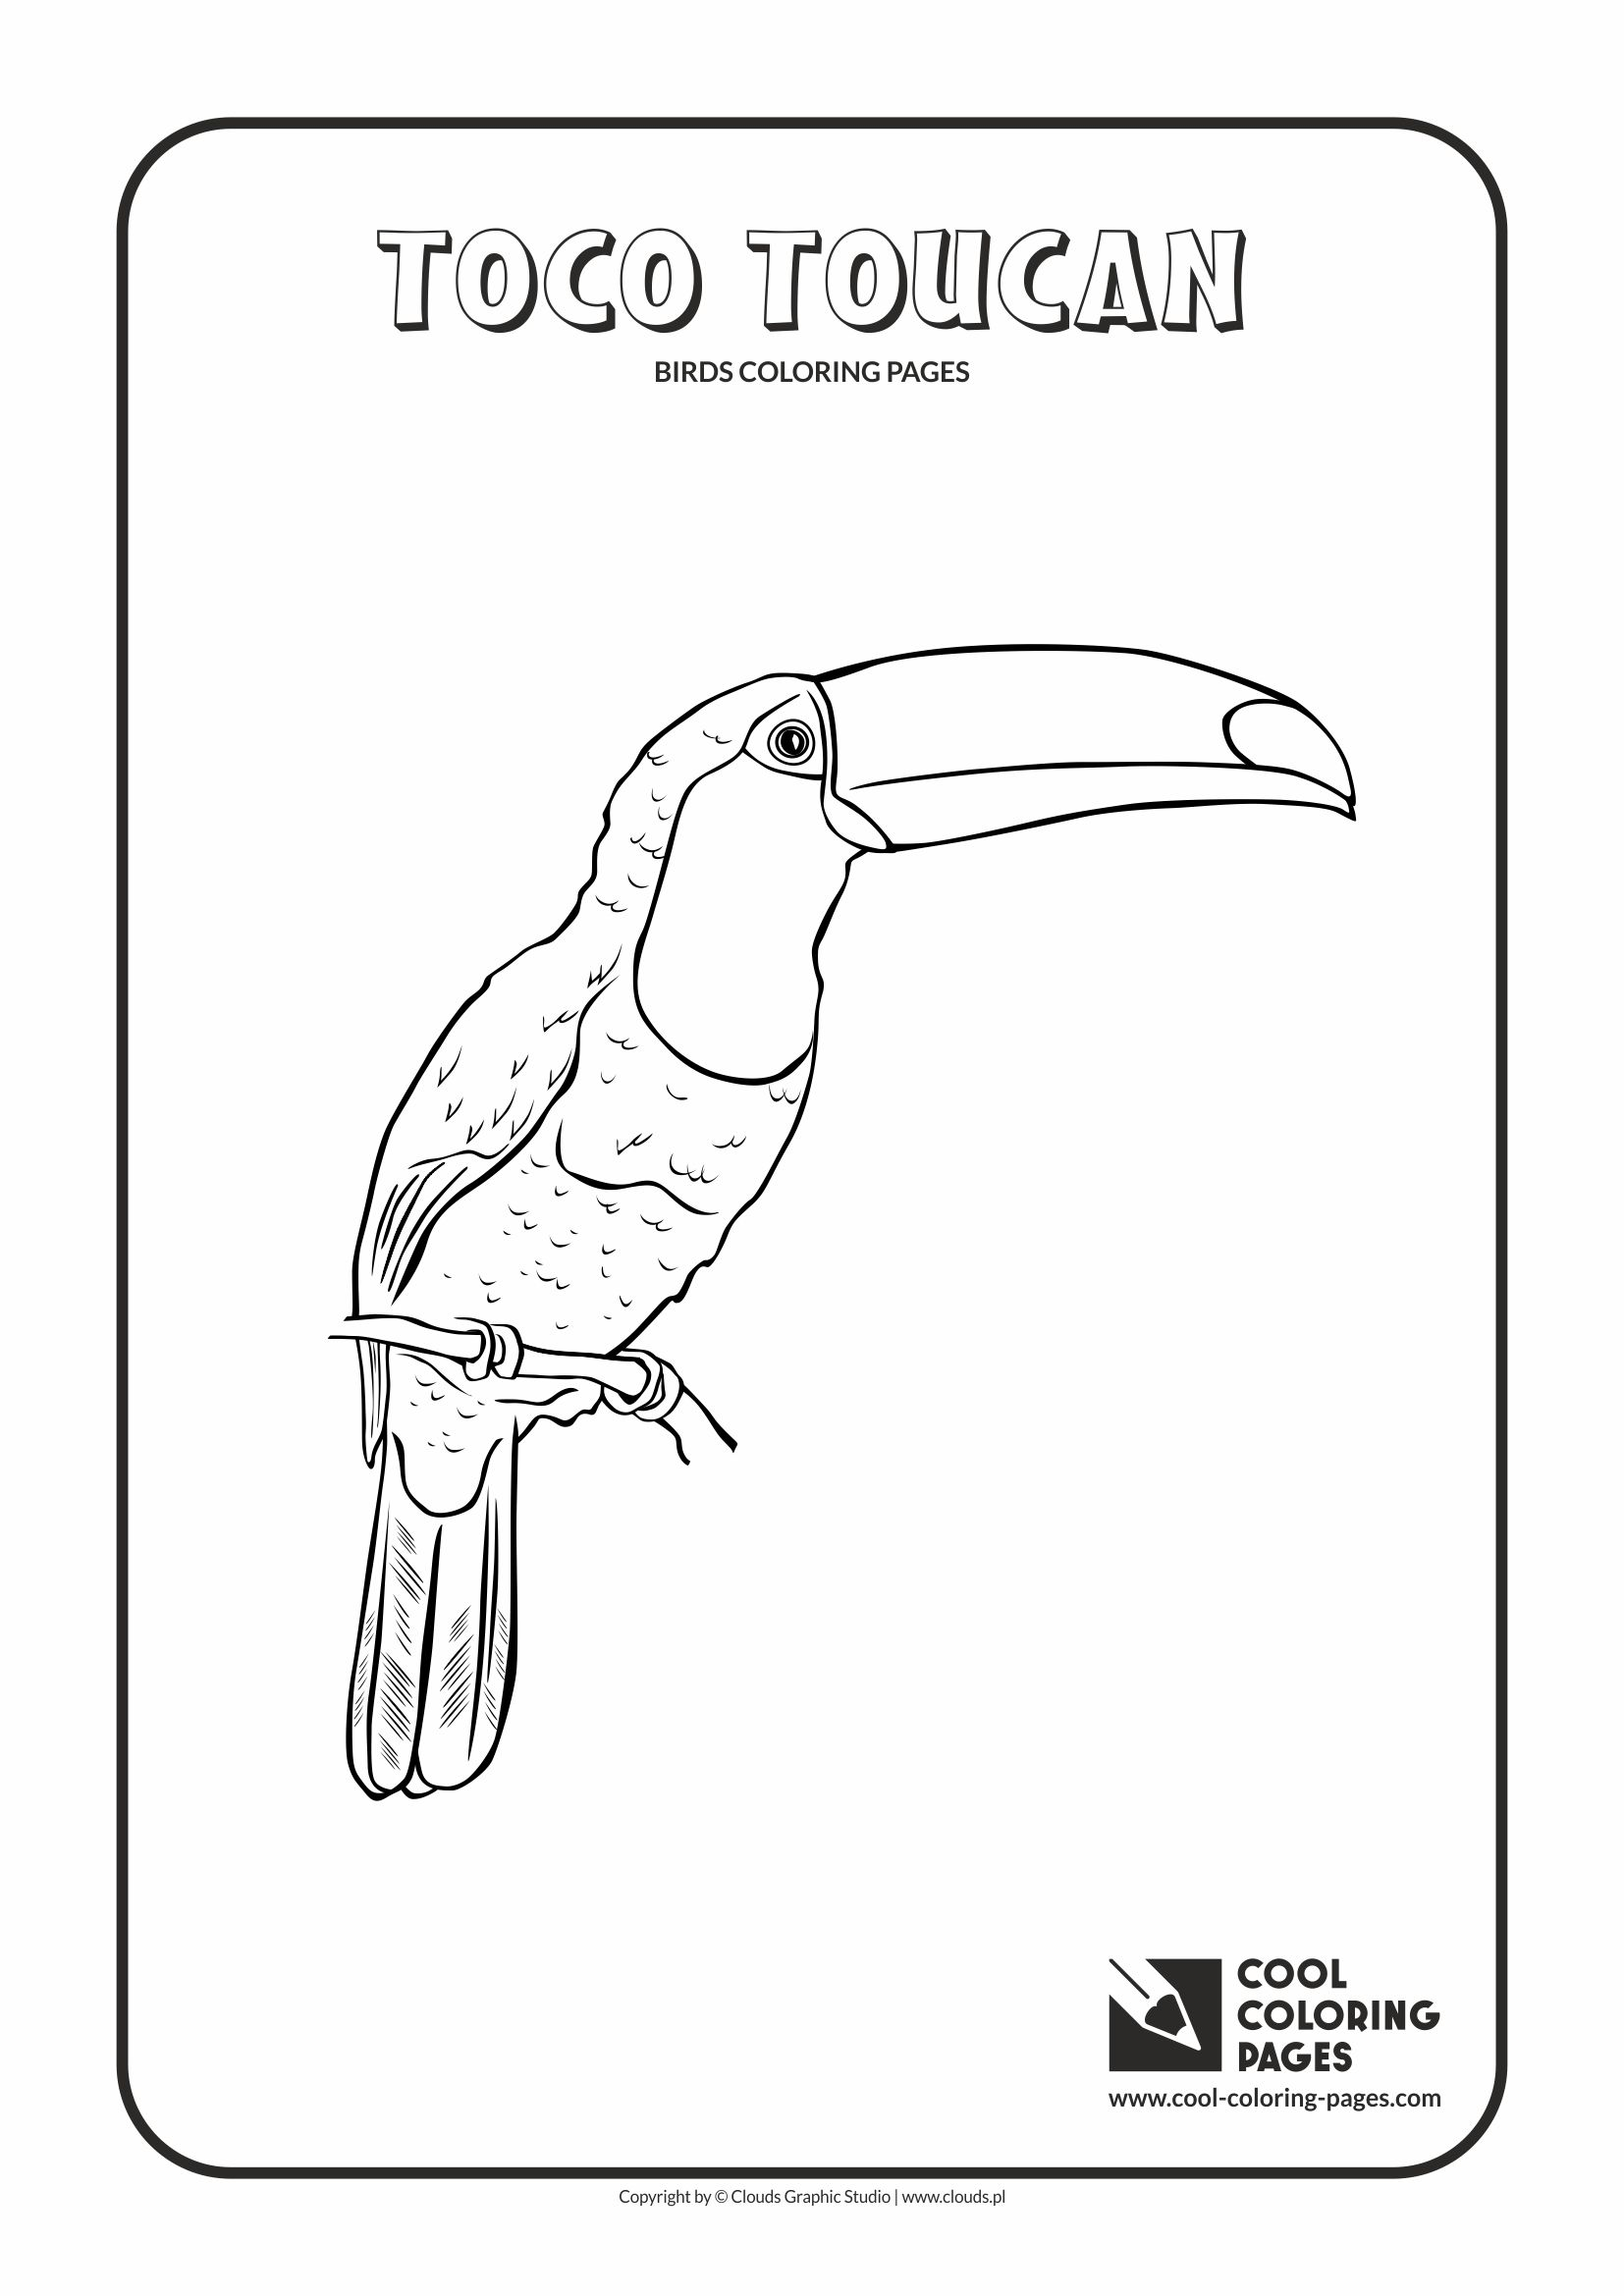 Cool Coloring Pages Birds Coloring Pages